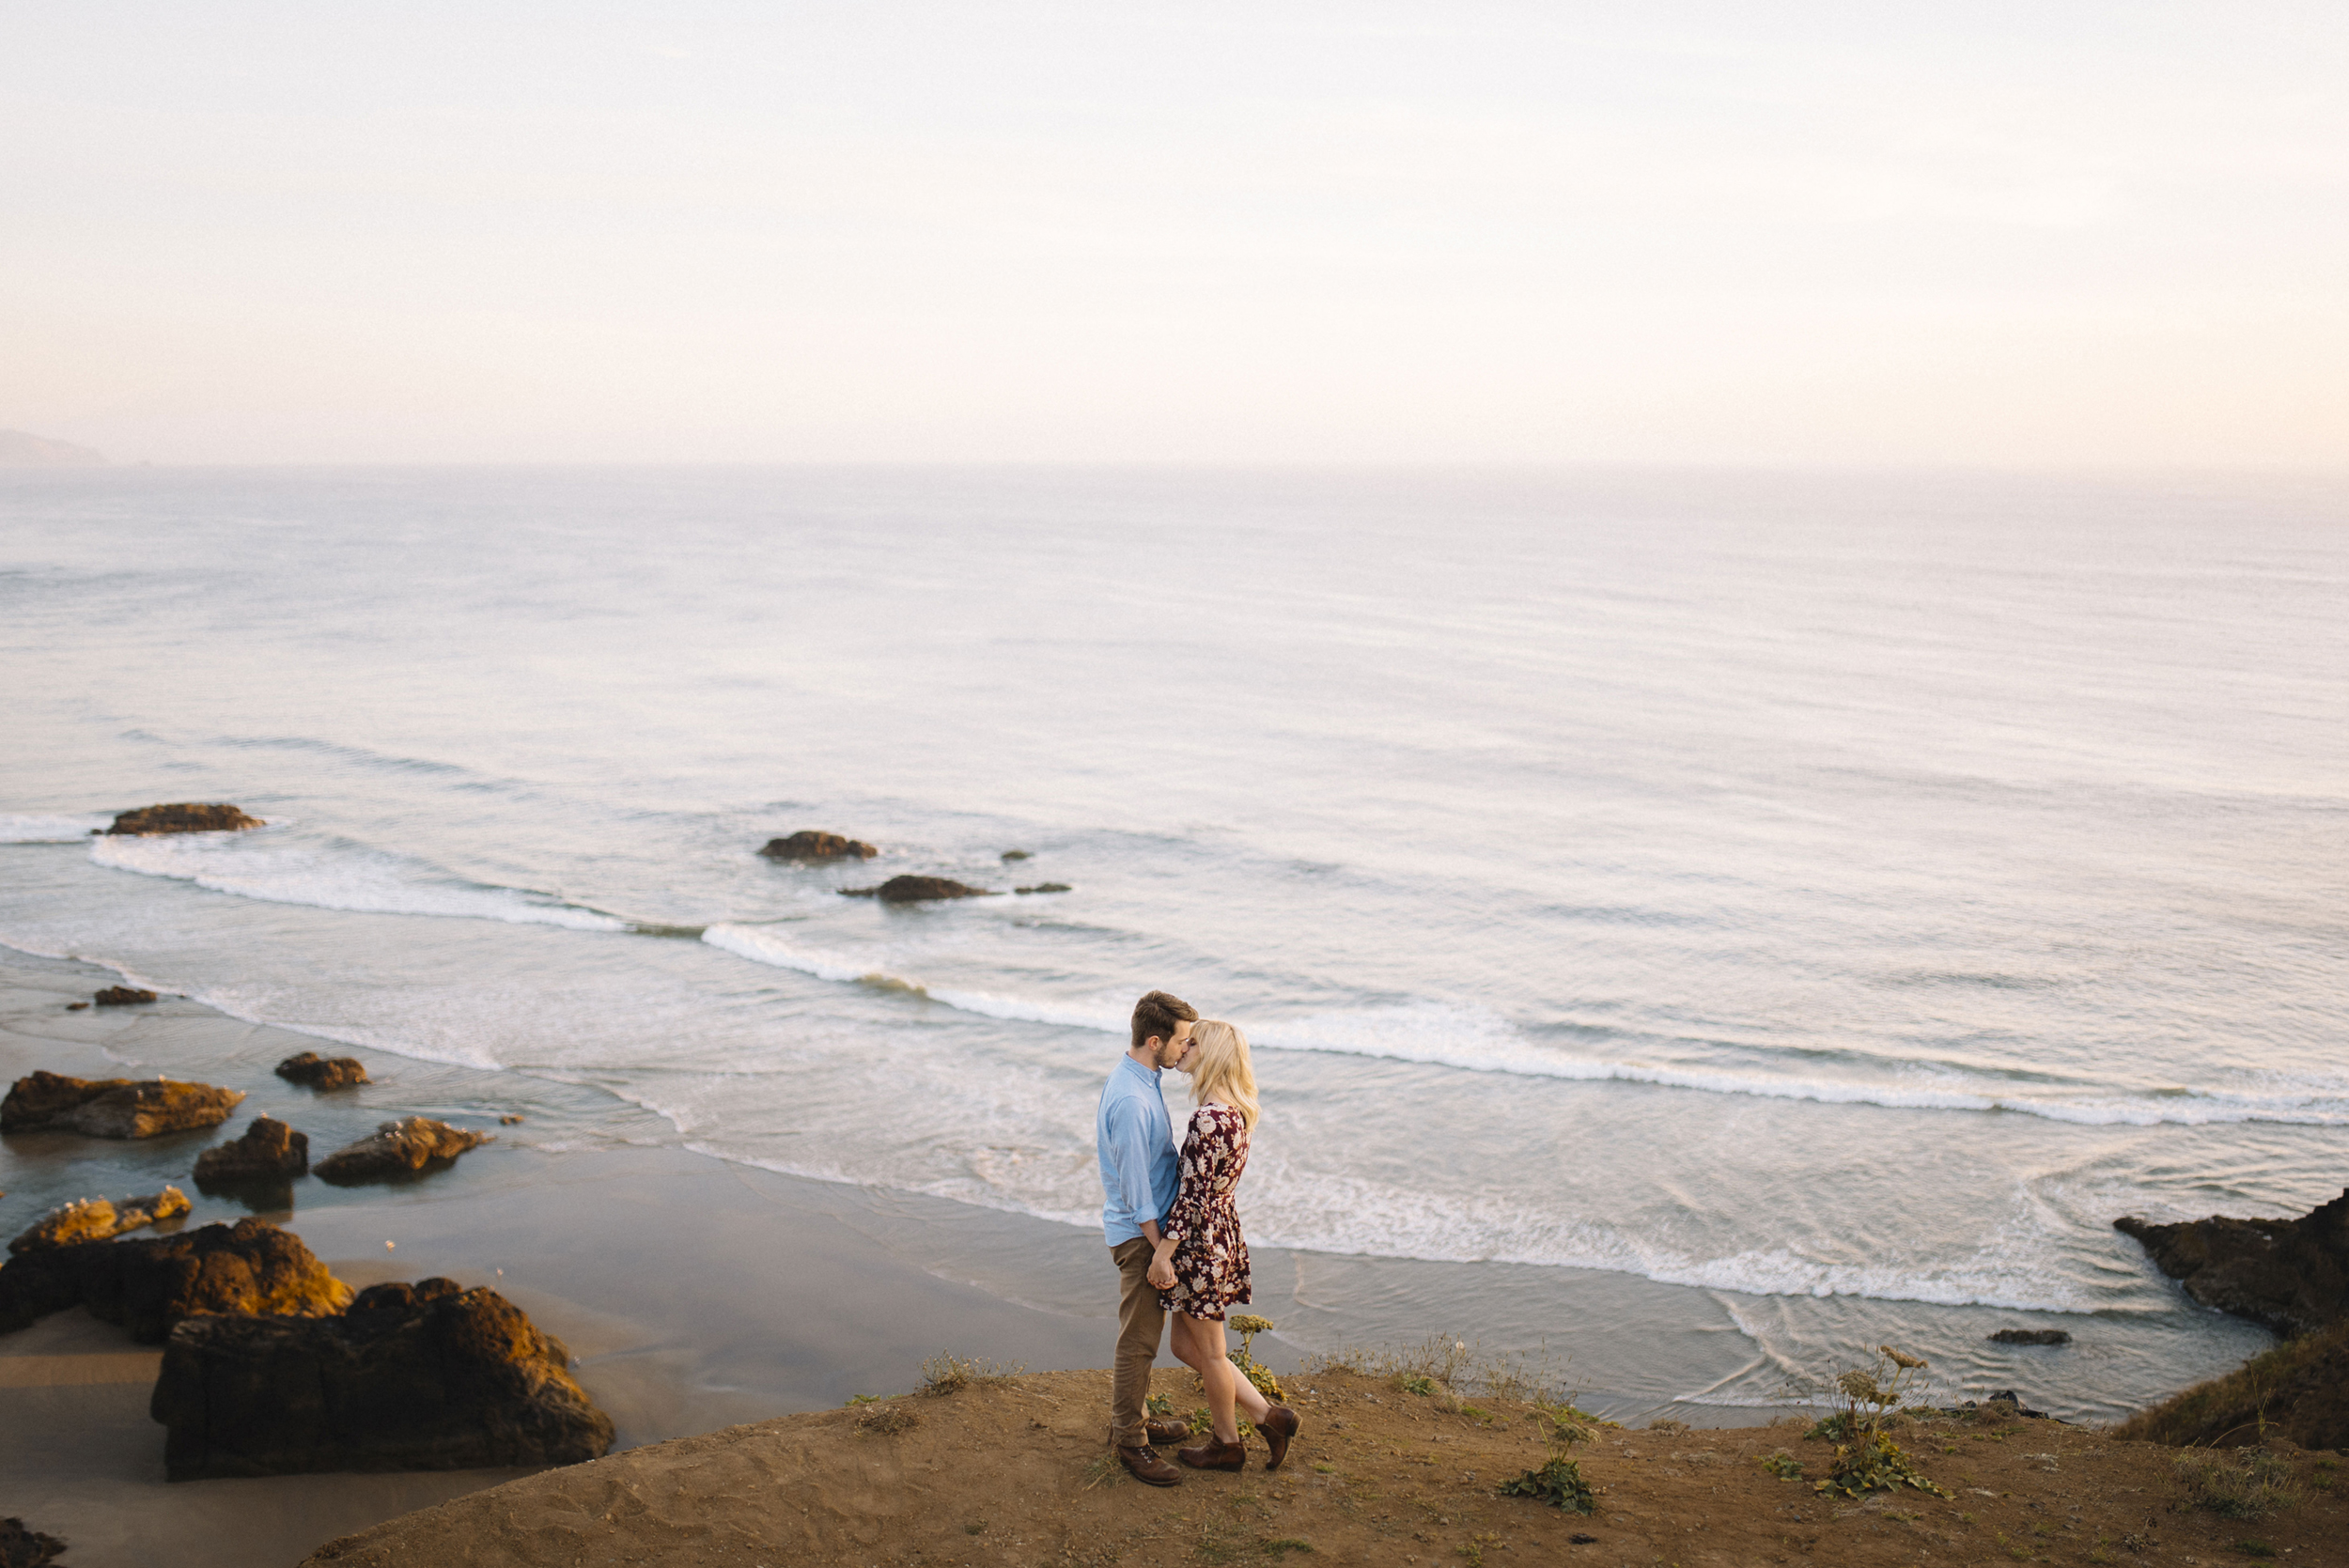 Cannon Beach Oregon Coast Adventure Couples Photographer 101.jpg